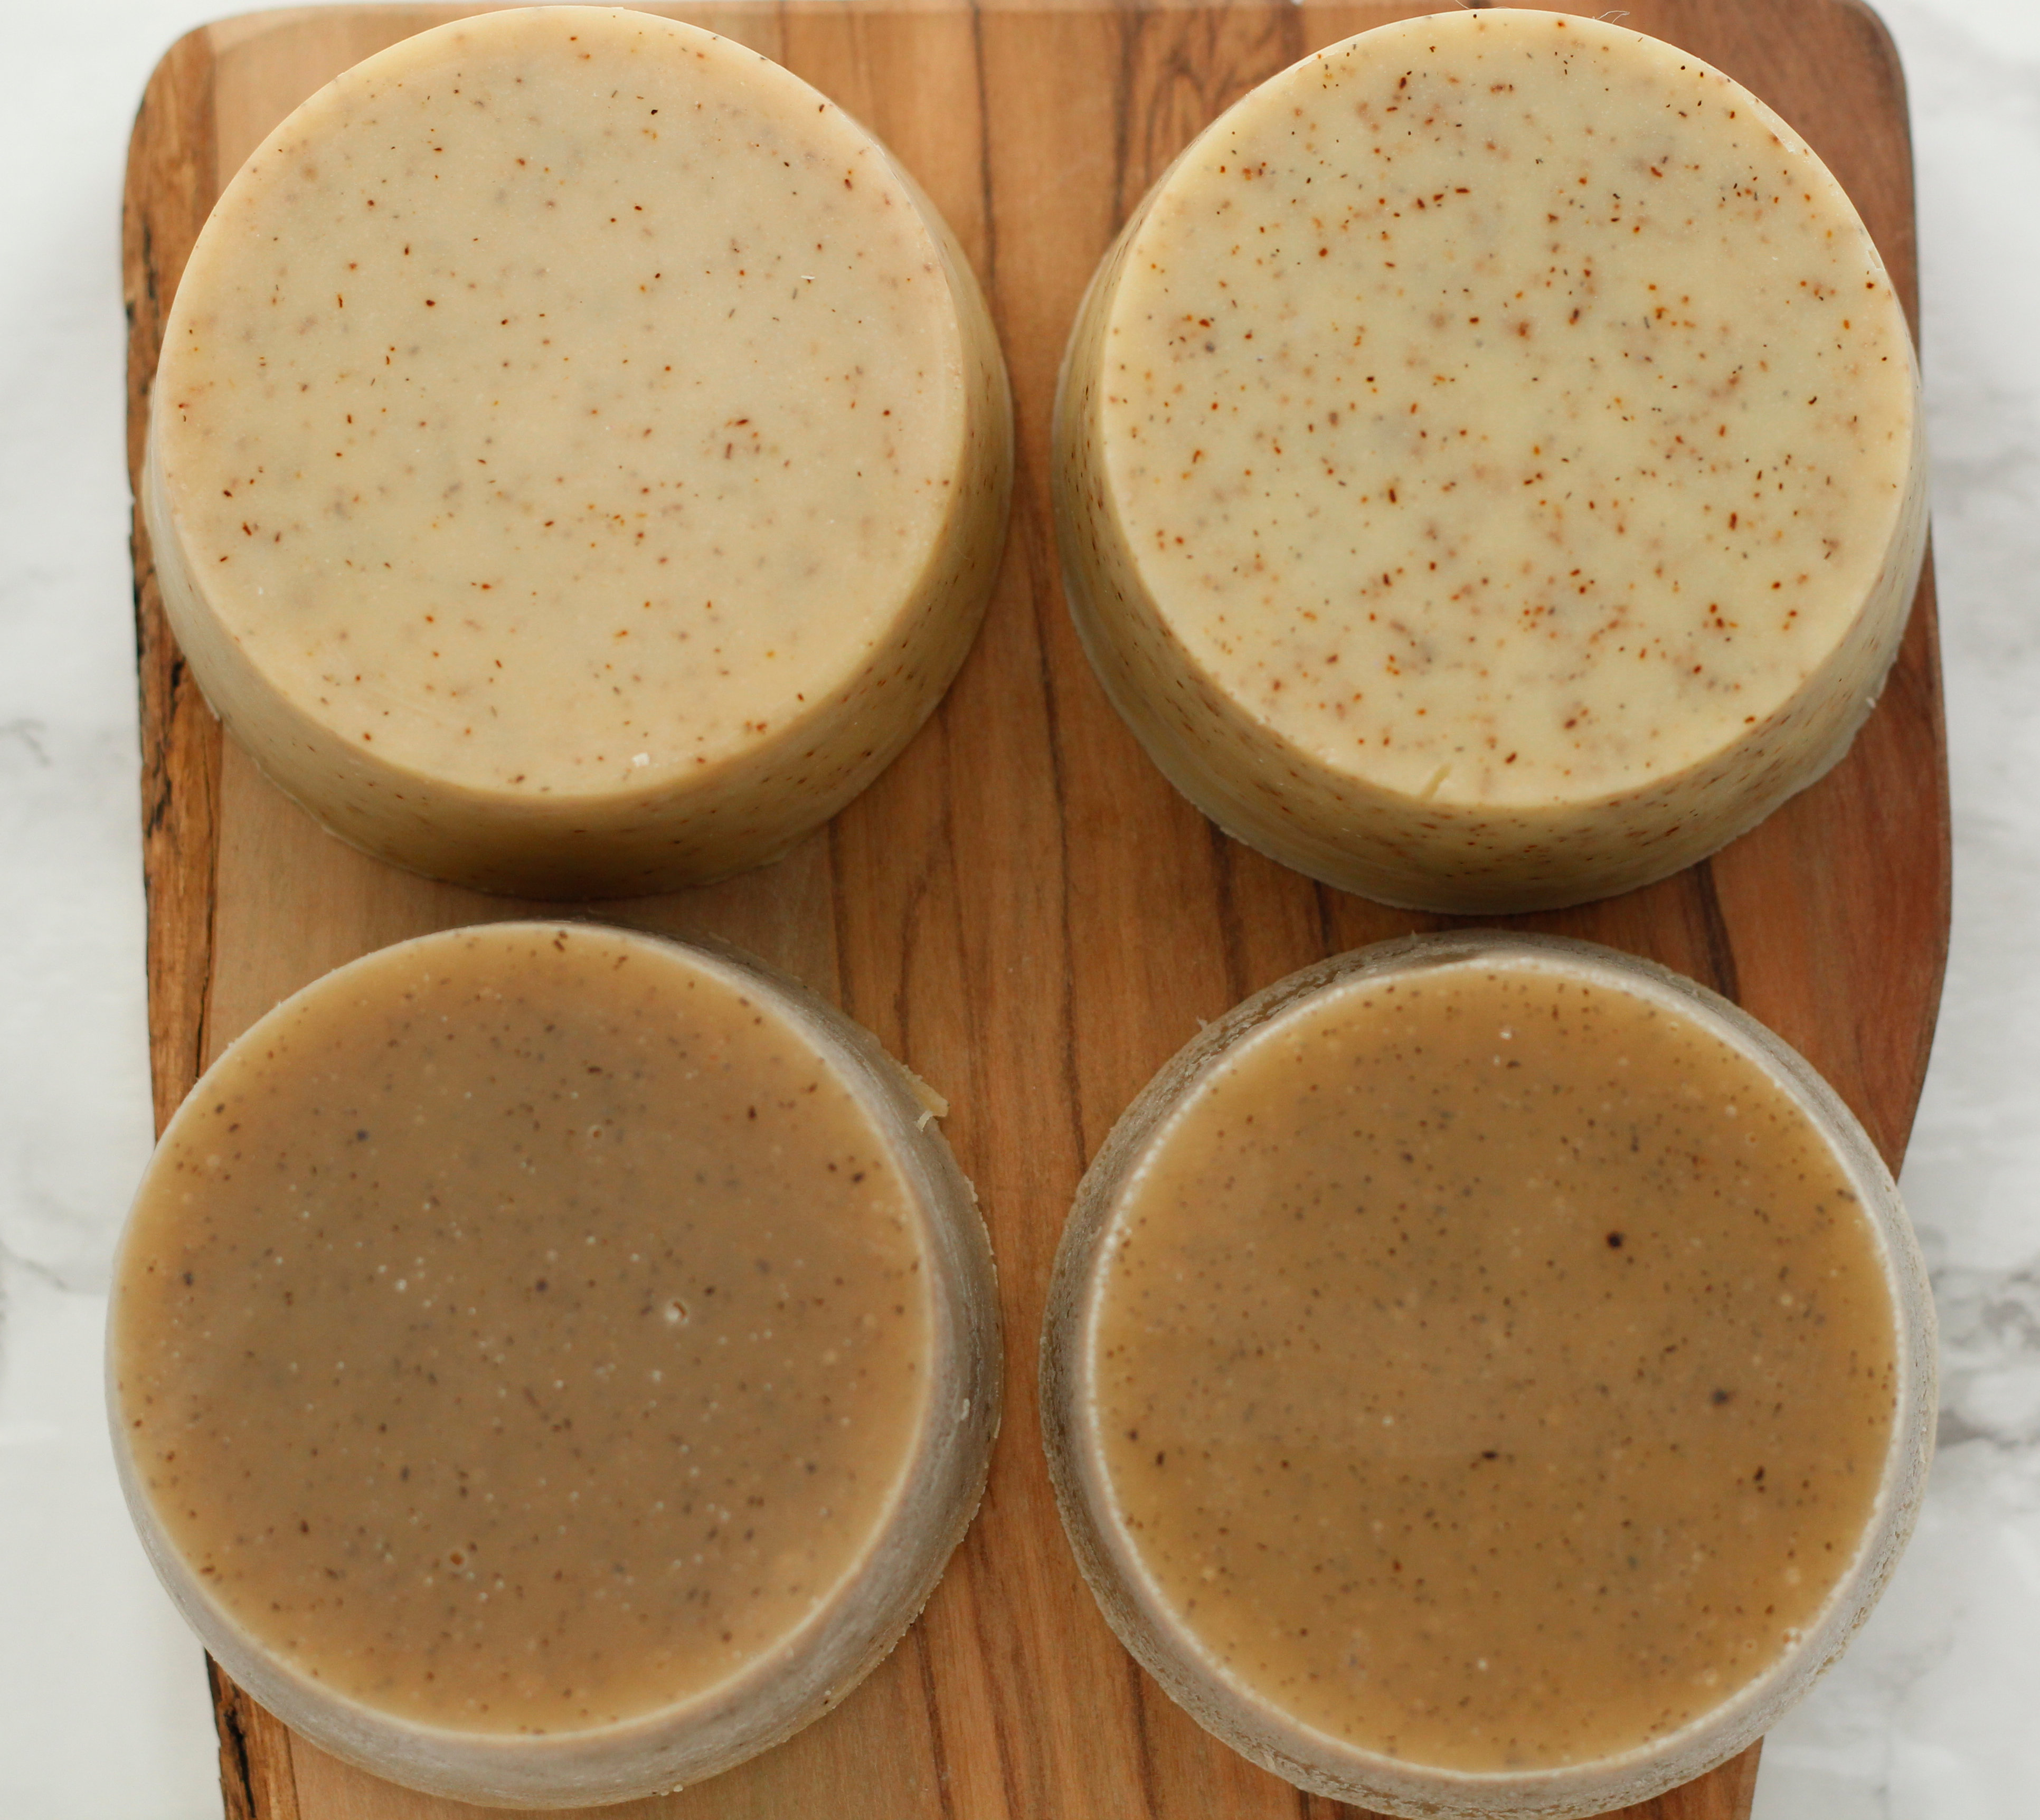 results of experiment for banana soap recipe